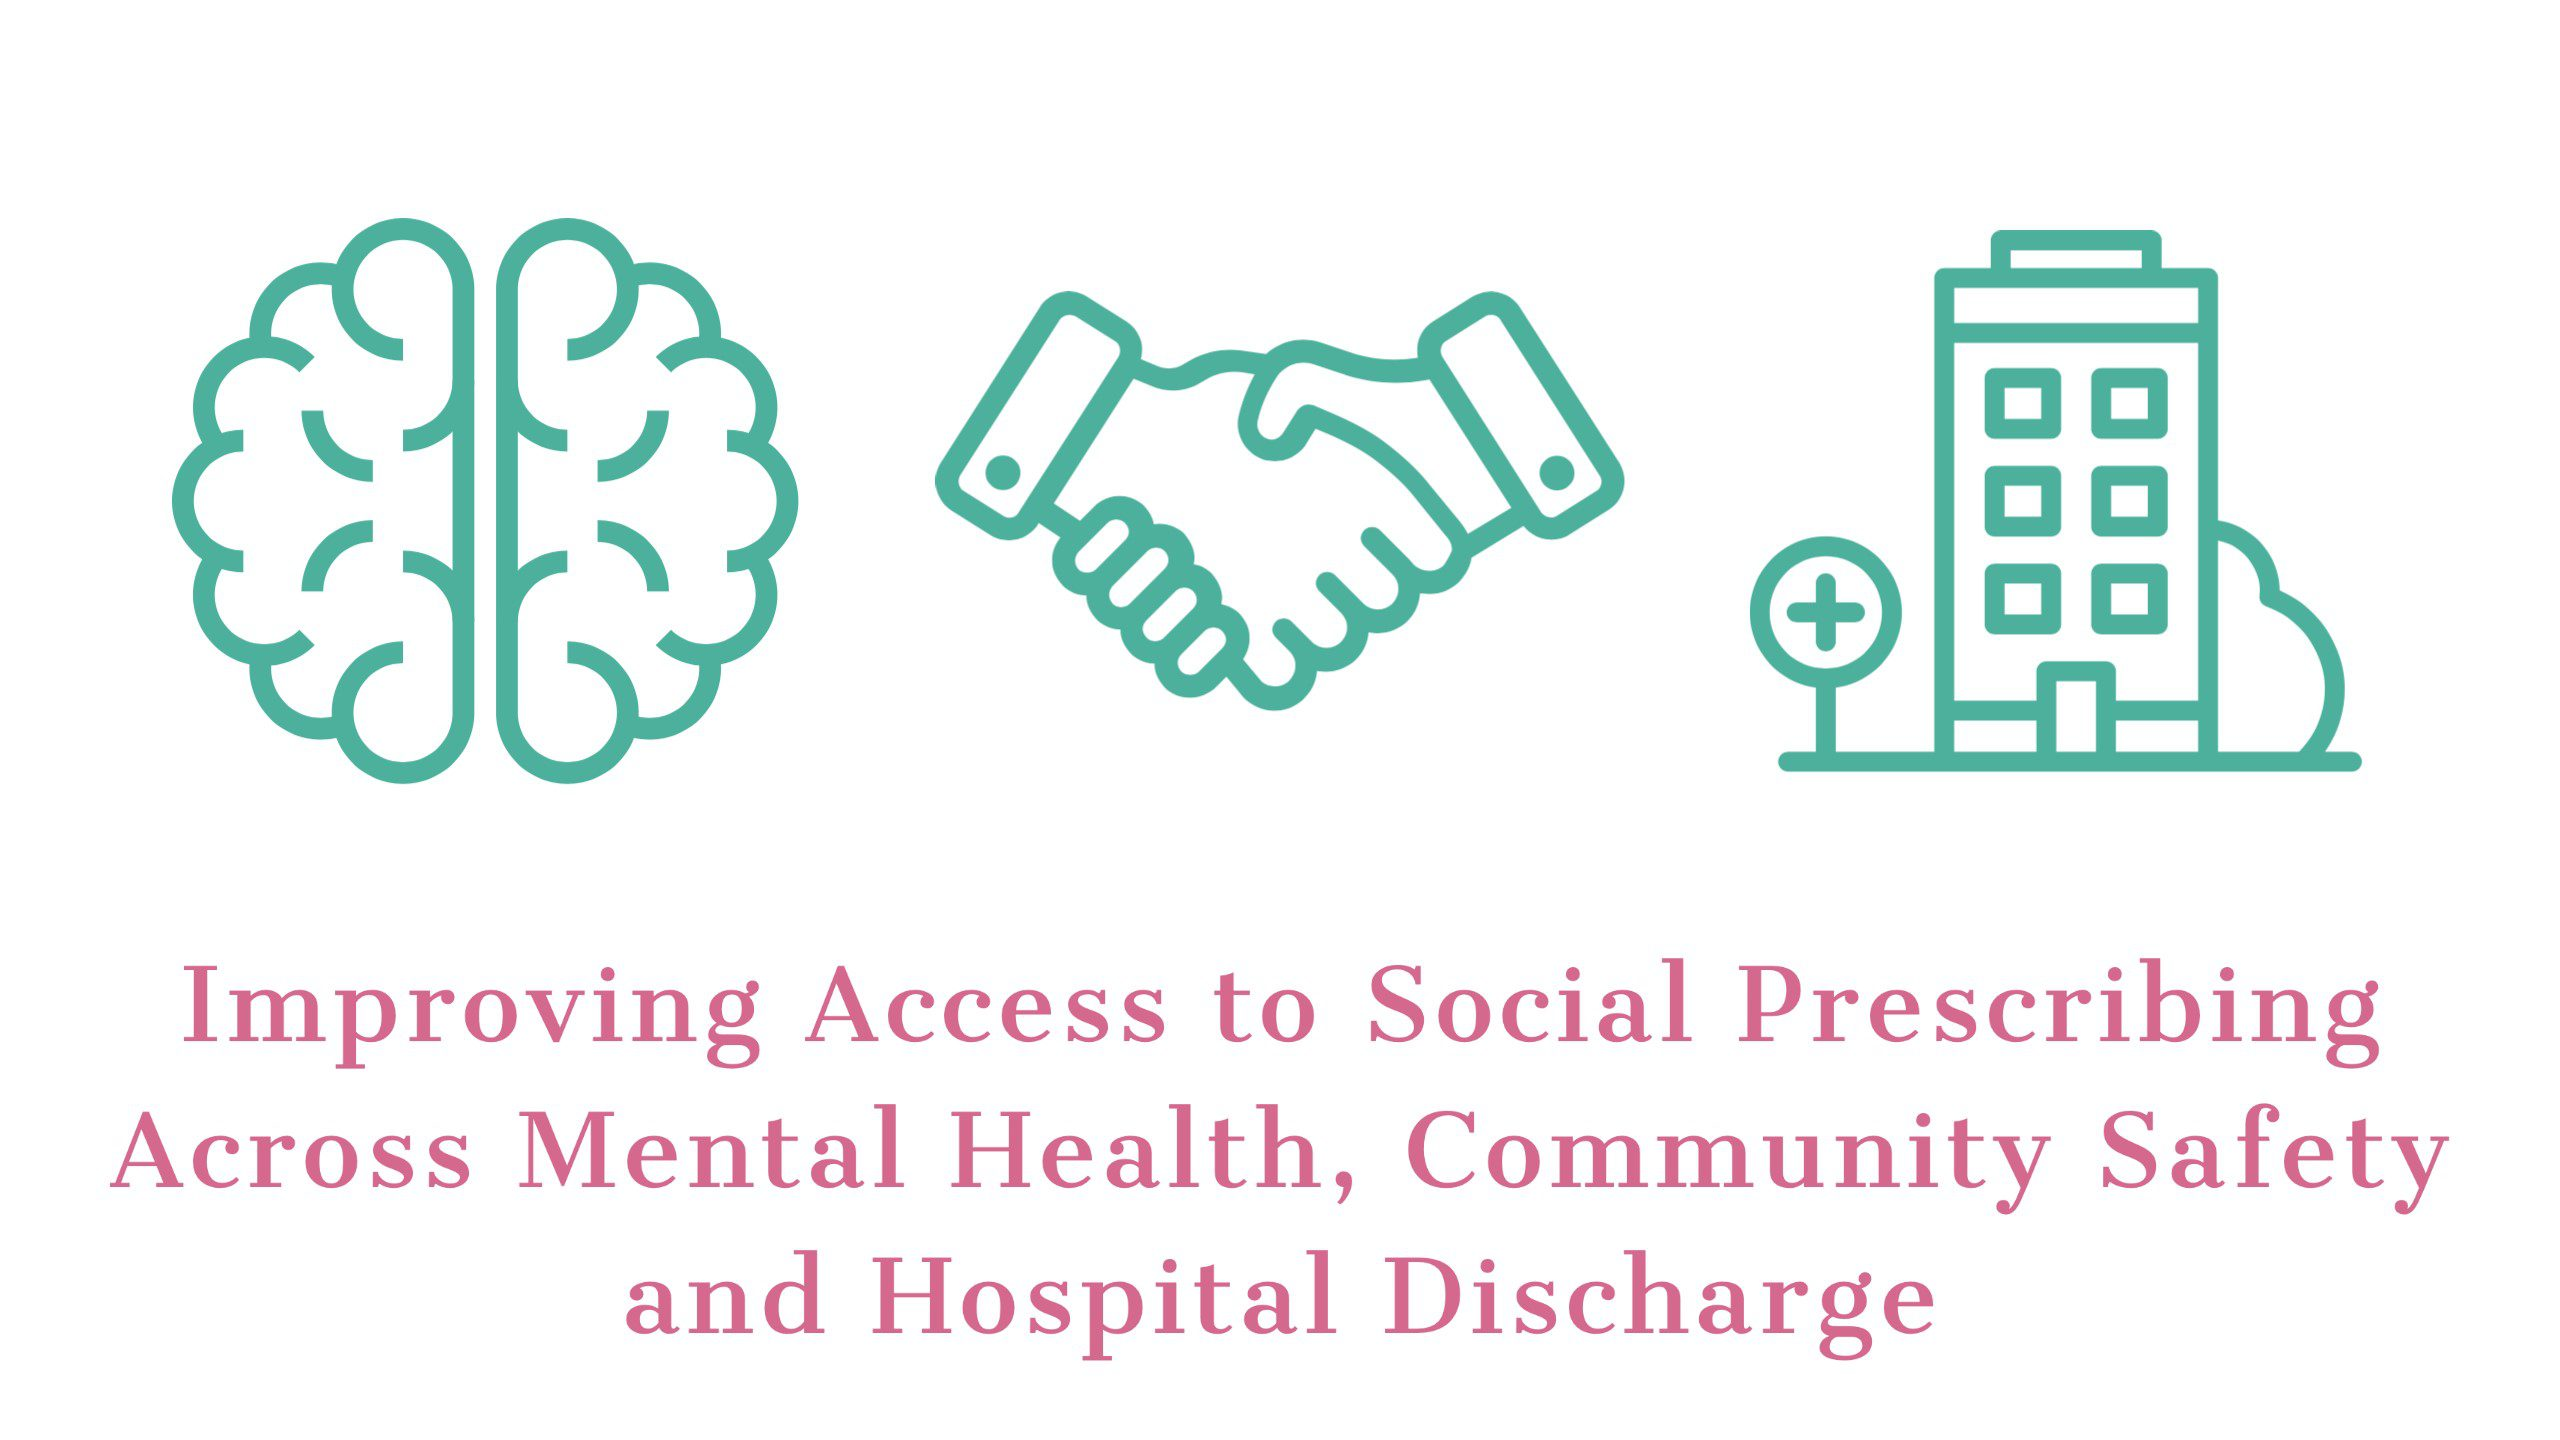 Sketch image of a brain, hands shaking each other and a building with the words 'Improving access to Social Prescribing across Mental Health, Community Safety and hospital discharge' underneath